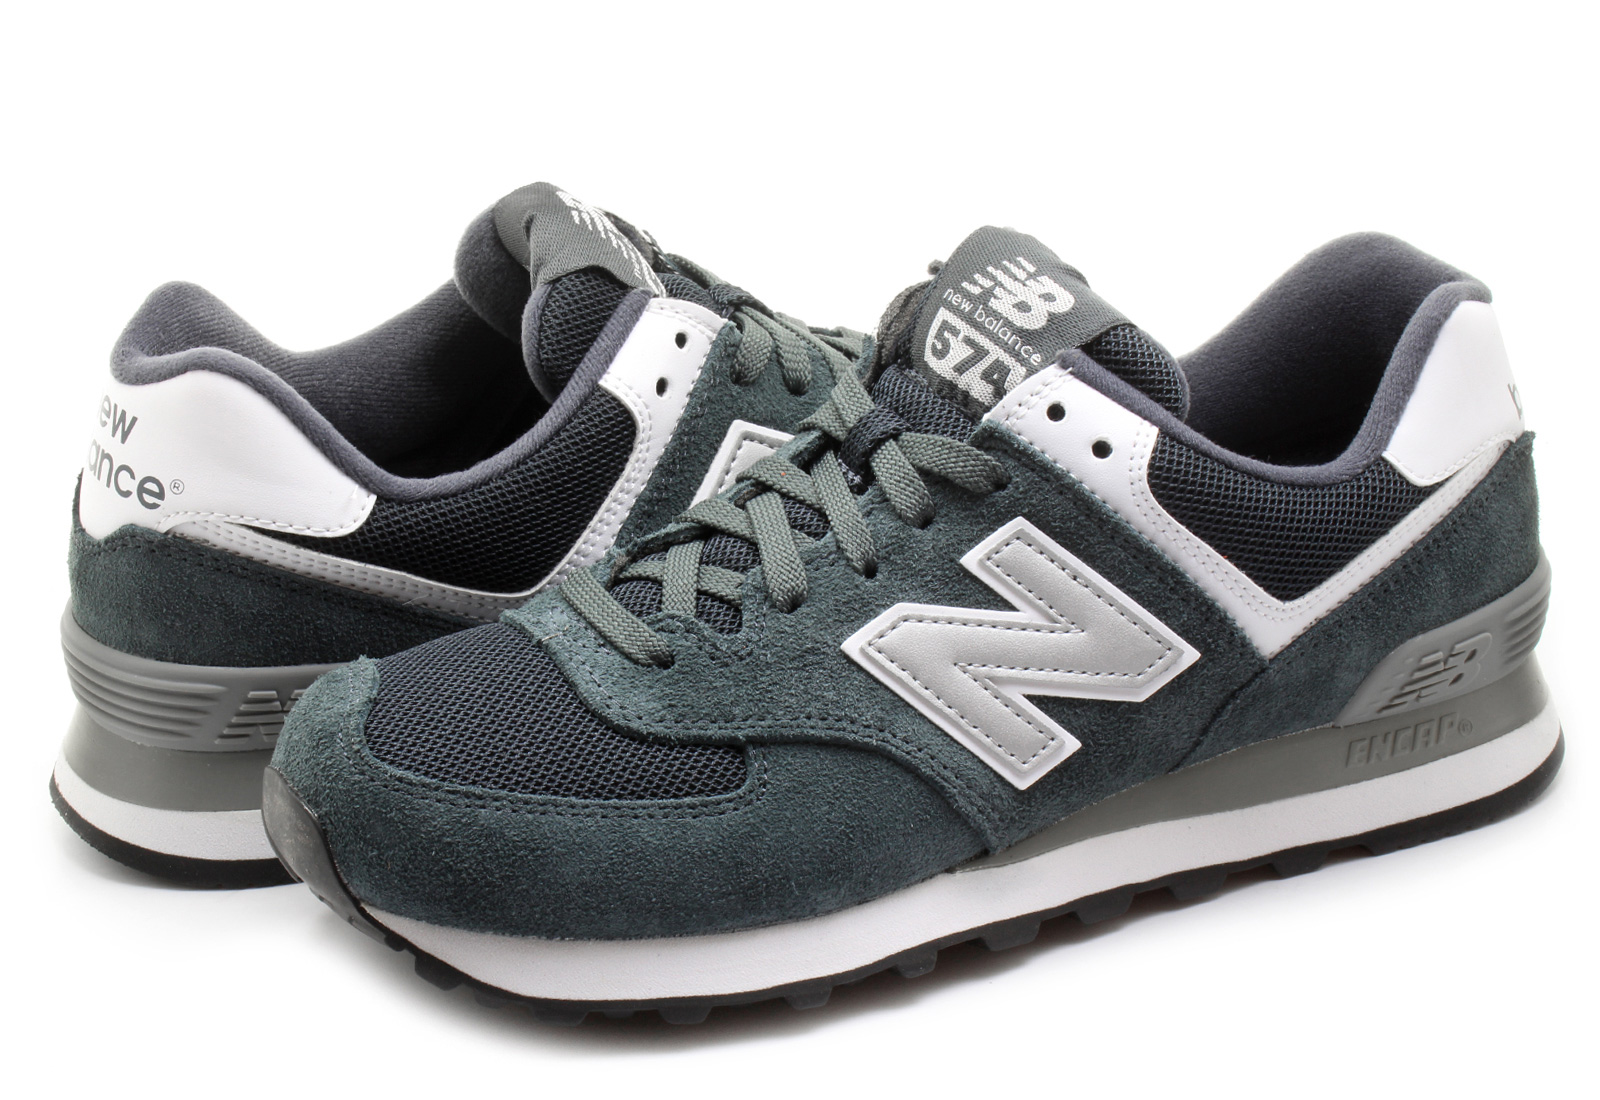 new balance shoes ml574 ml574vag online shop for sneakers shoes and boots. Black Bedroom Furniture Sets. Home Design Ideas